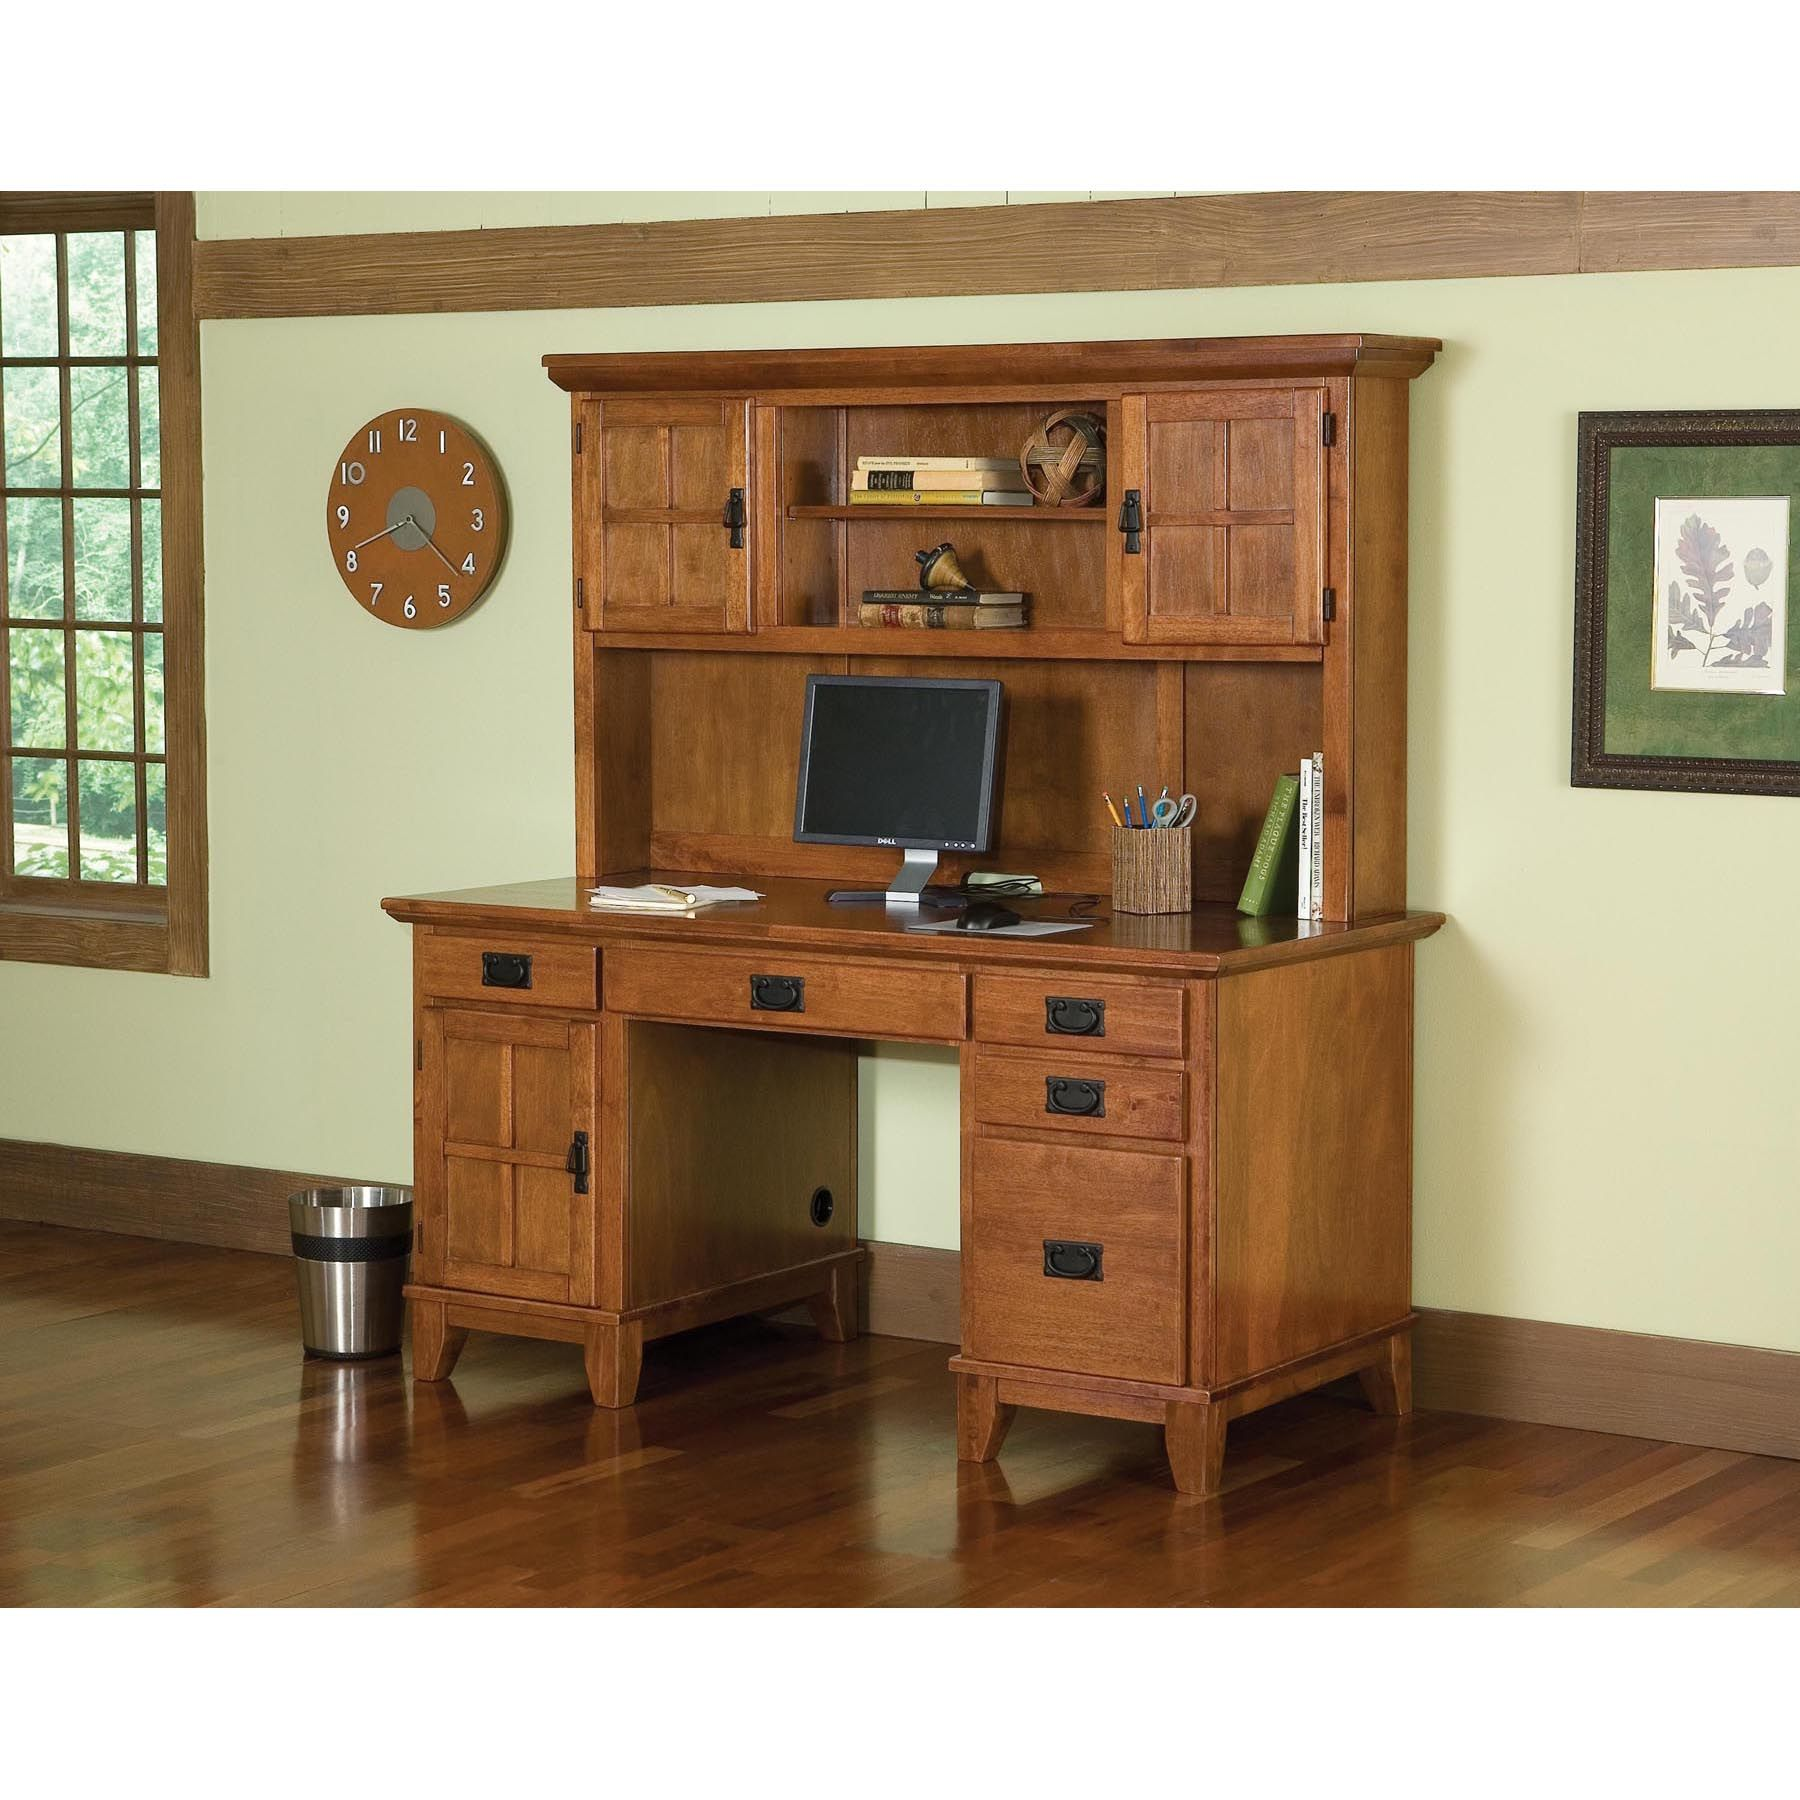 l executive and office ideas design shaped desk hutch phenomenal with pictures depot home